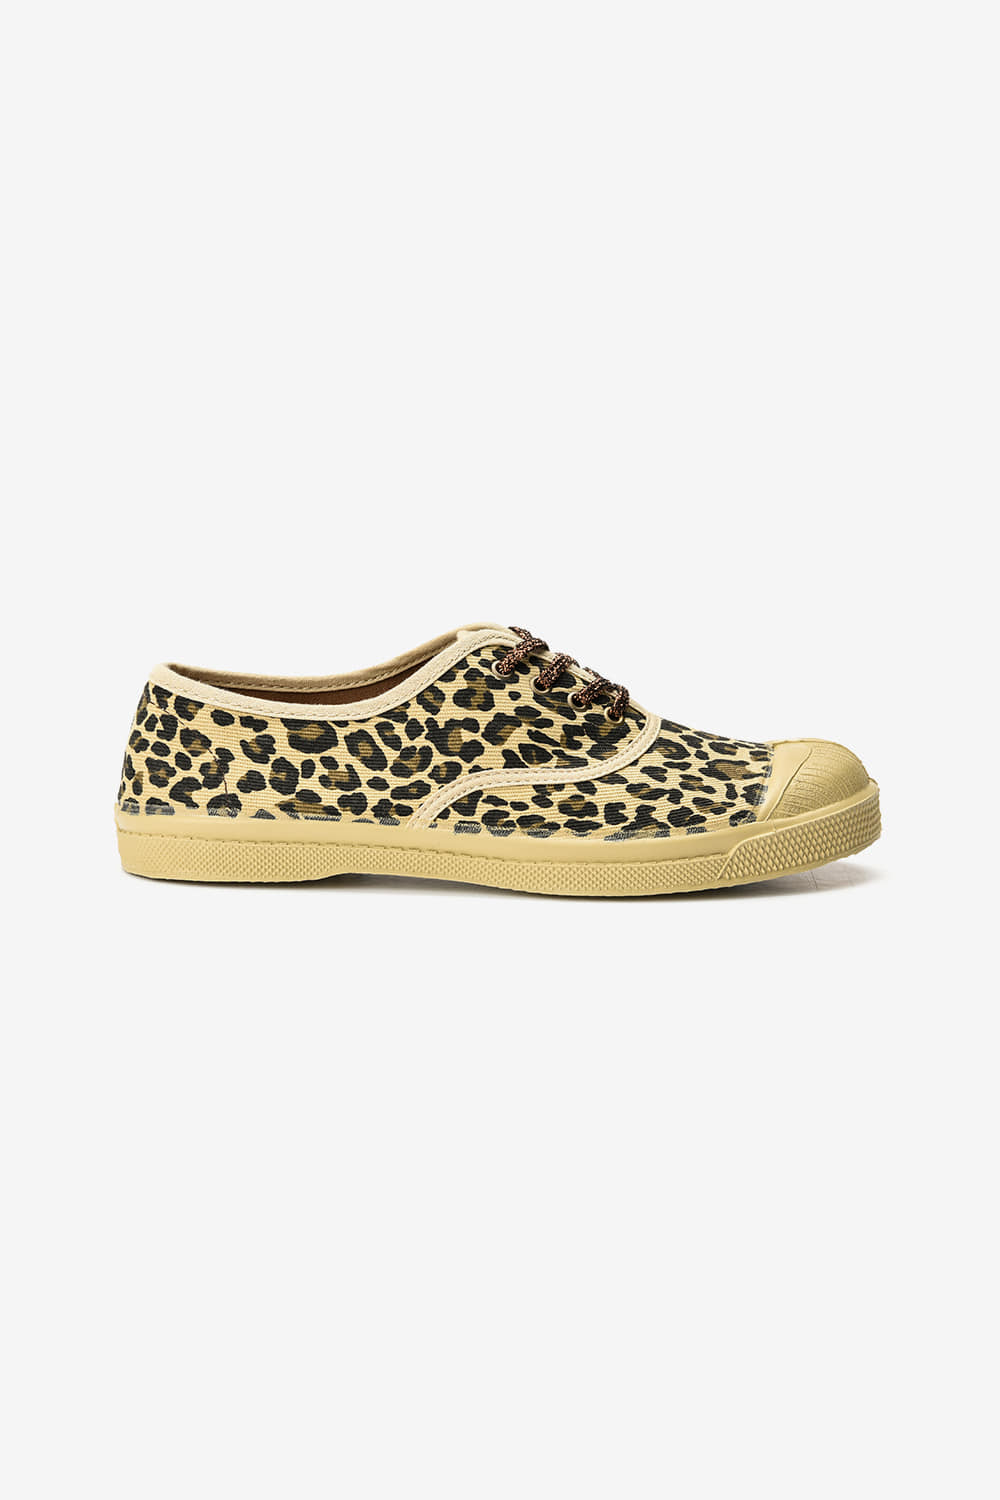 [Woman Lacet Limited Panther] Sand BS9FSO116YL